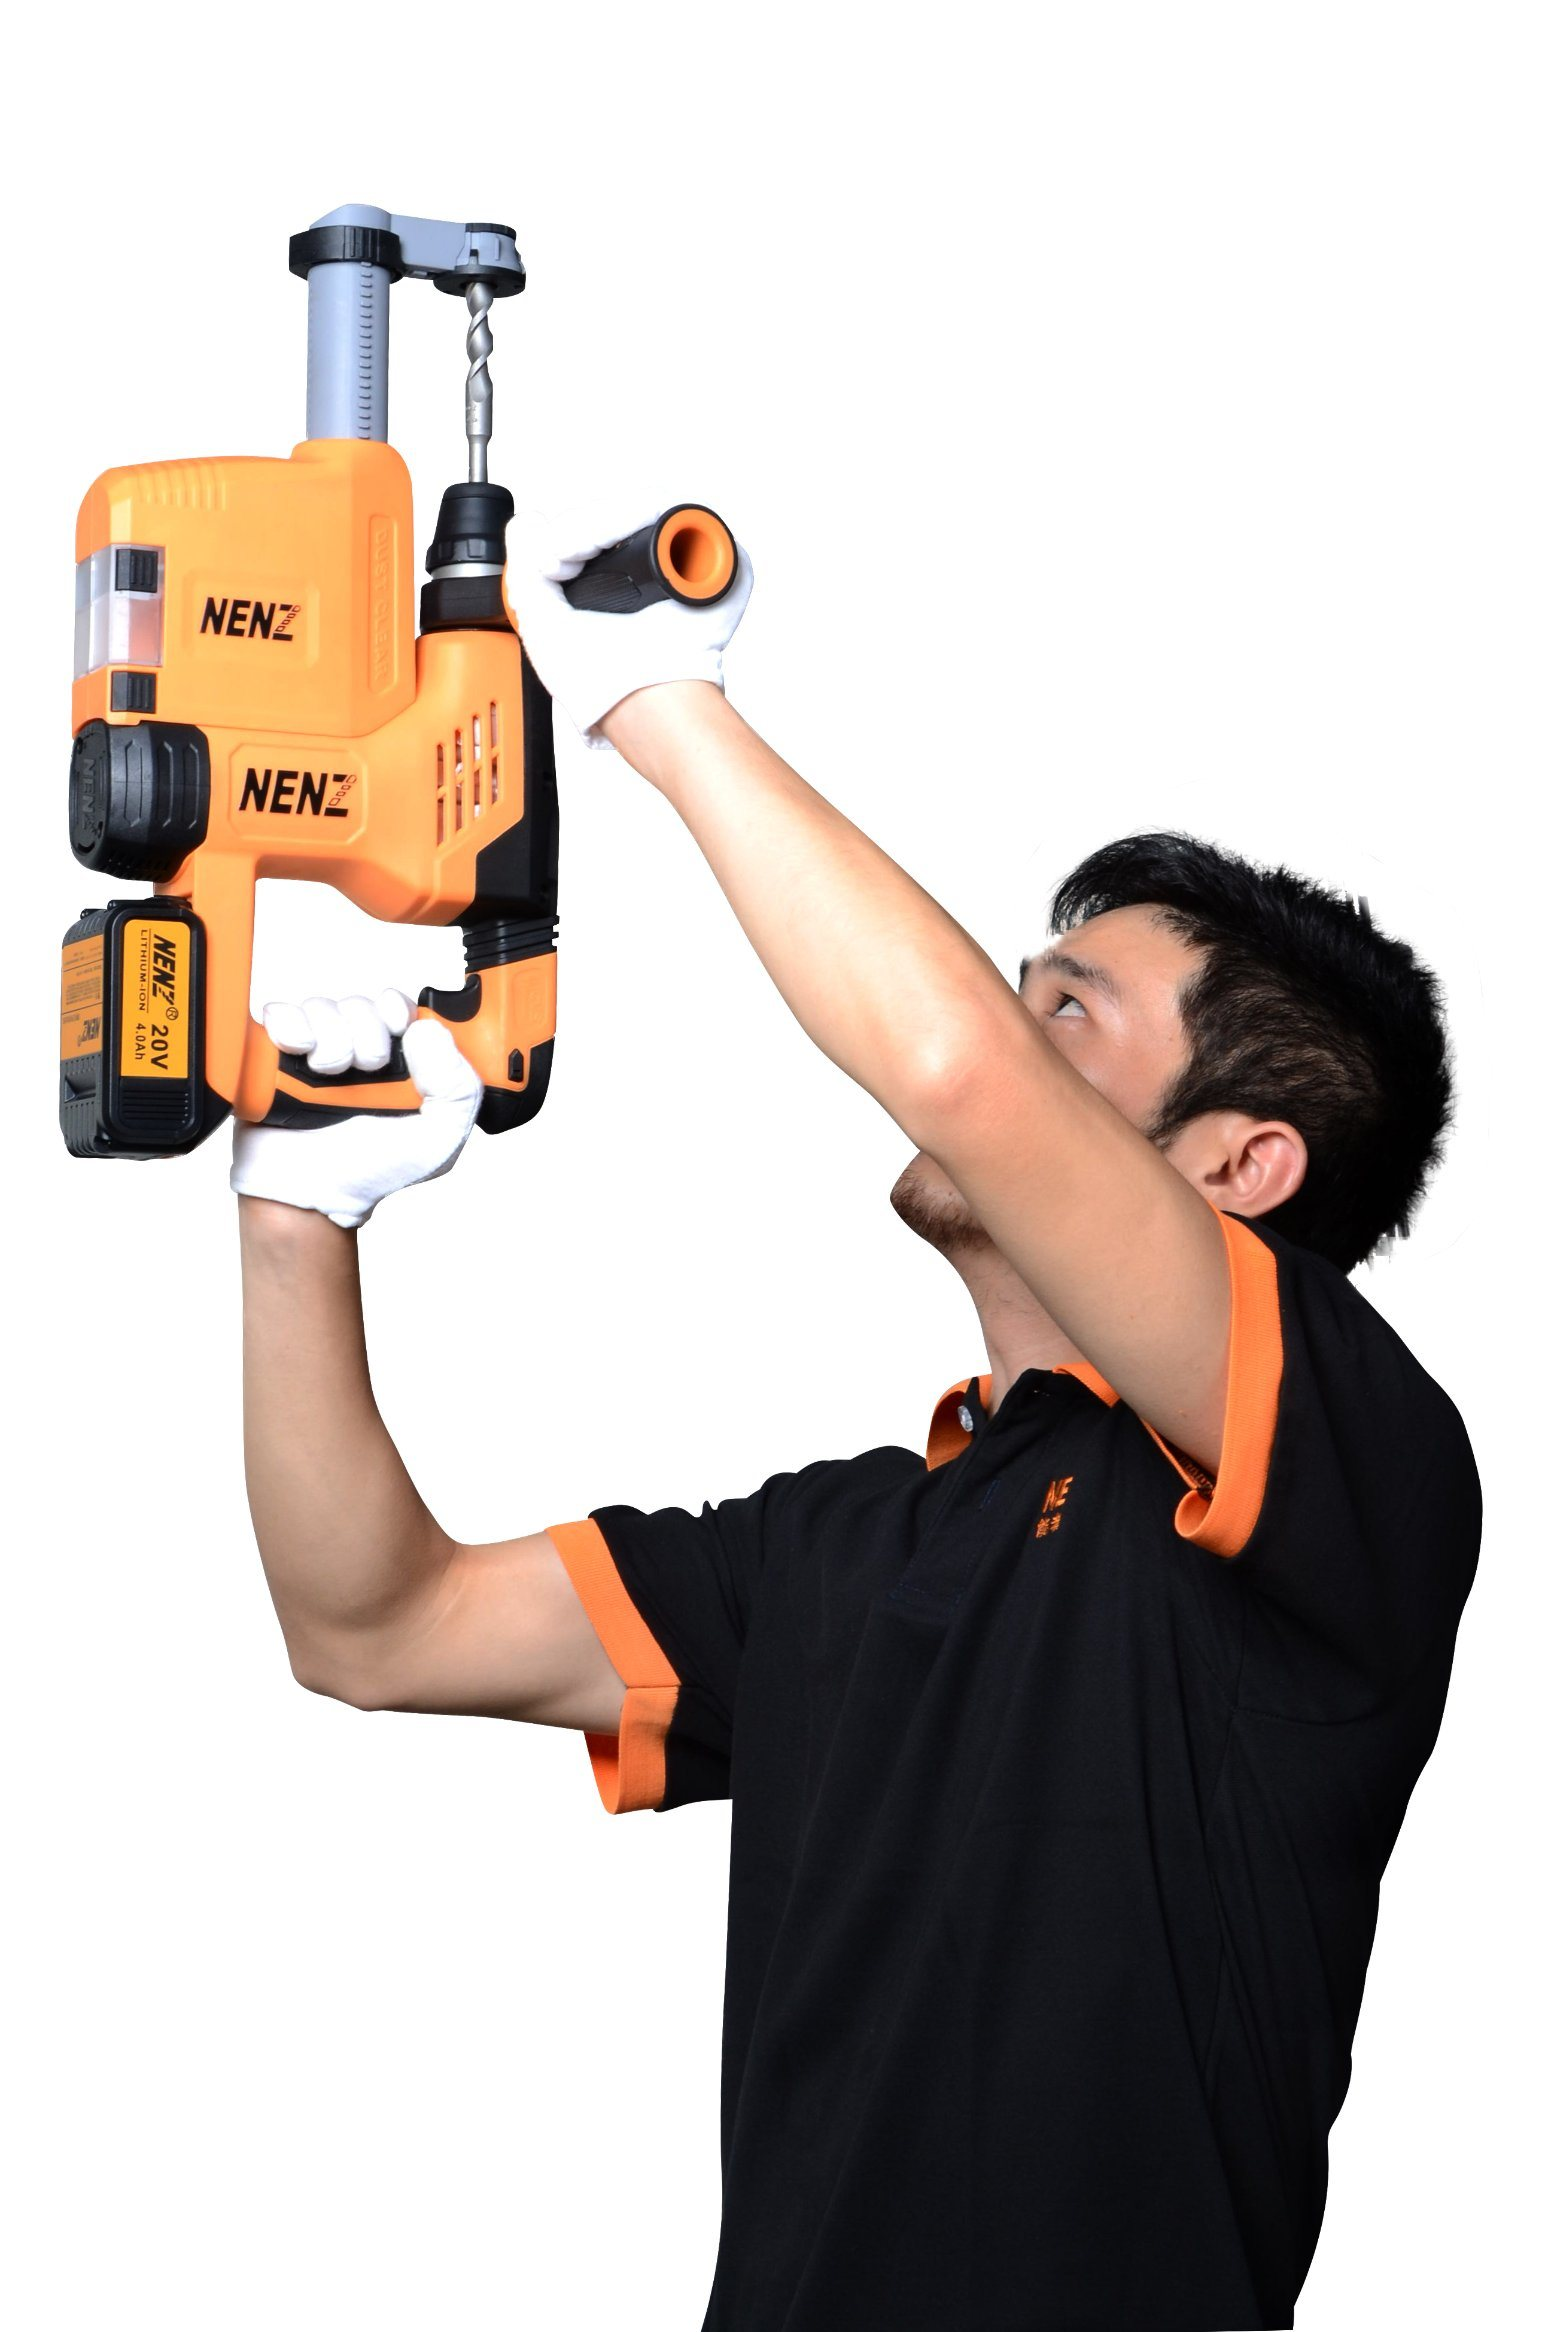 Nenz 600W DC Cordless Electric Tool with Dust Extractor (NZ80-01)